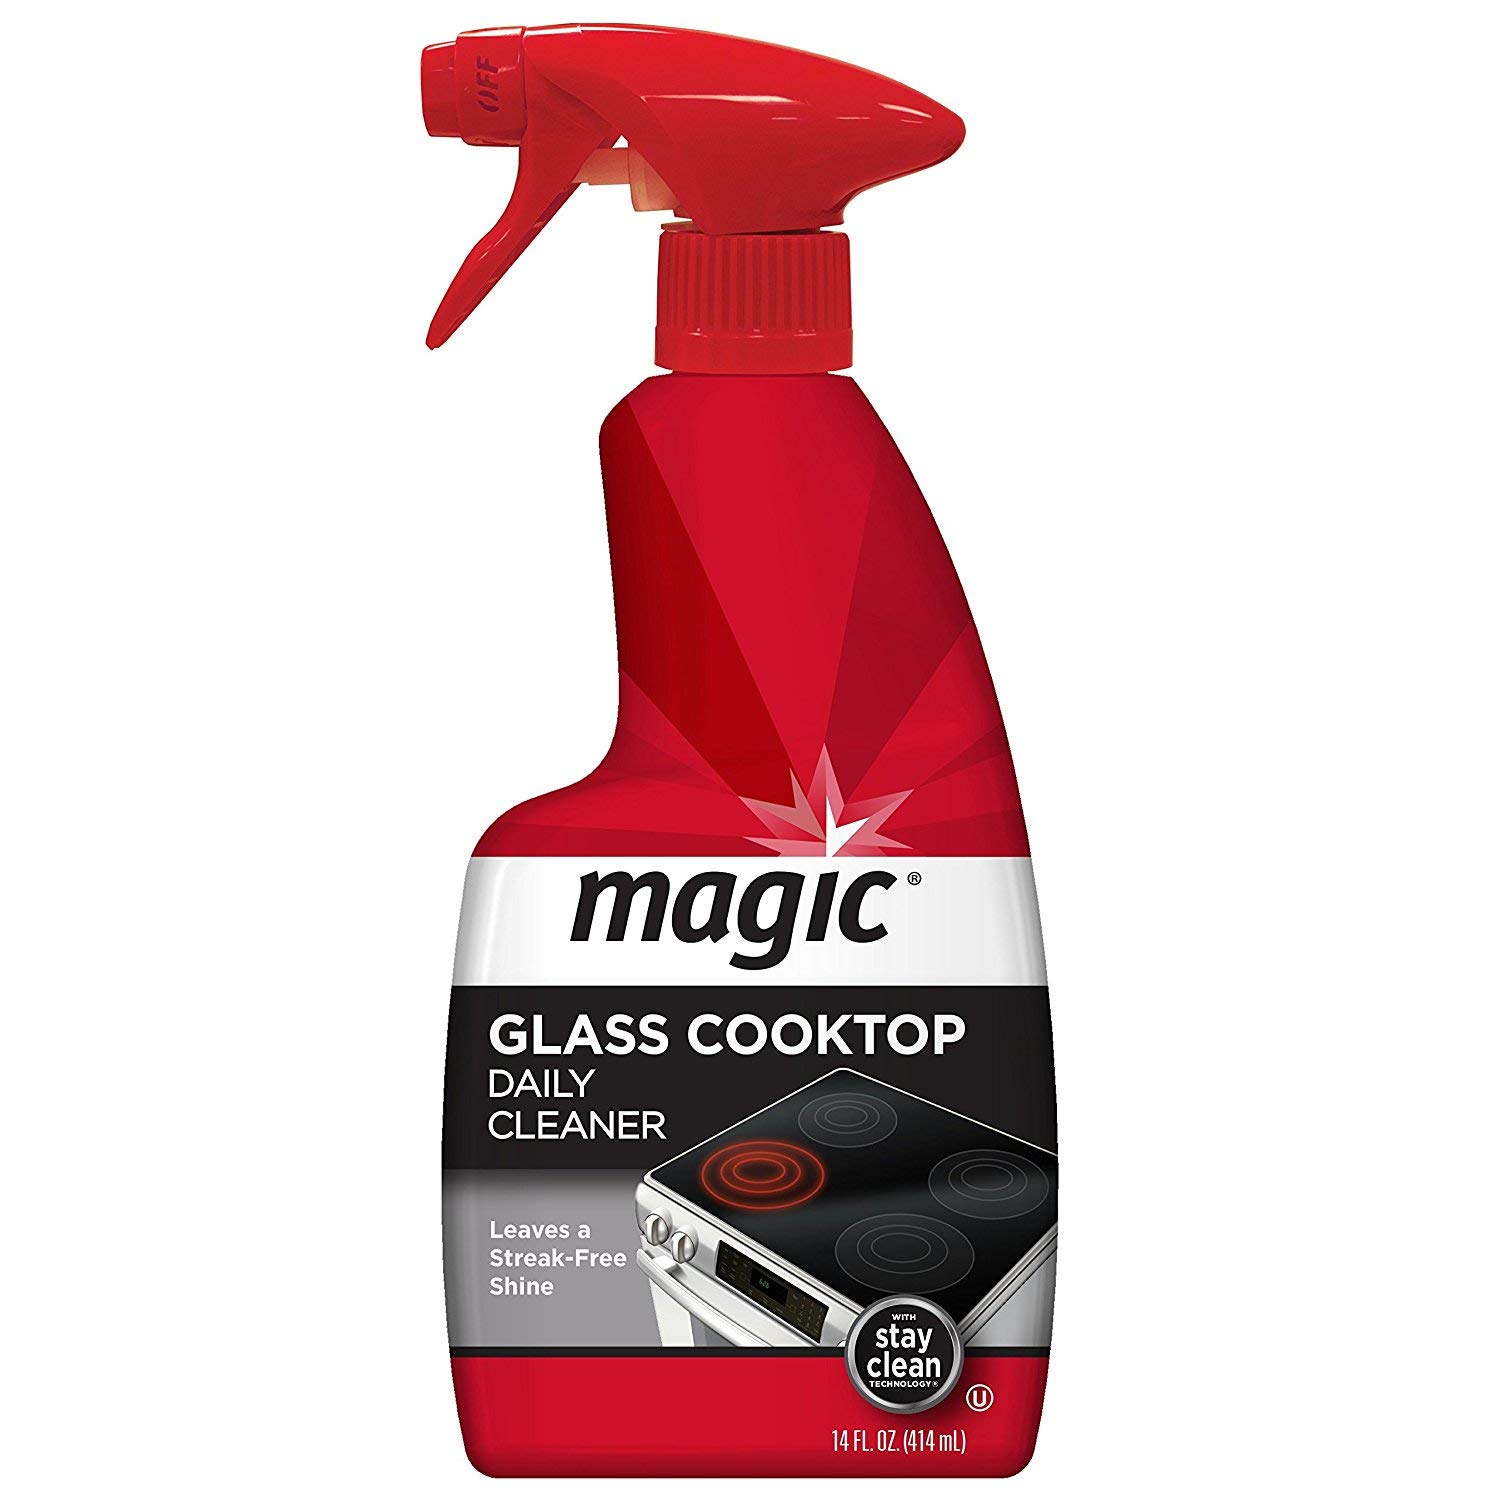 Magic Glass Cooktop Daily Cleaner 14 oz. Trigger (Kosher For Passover) 2-Pack by Magic3